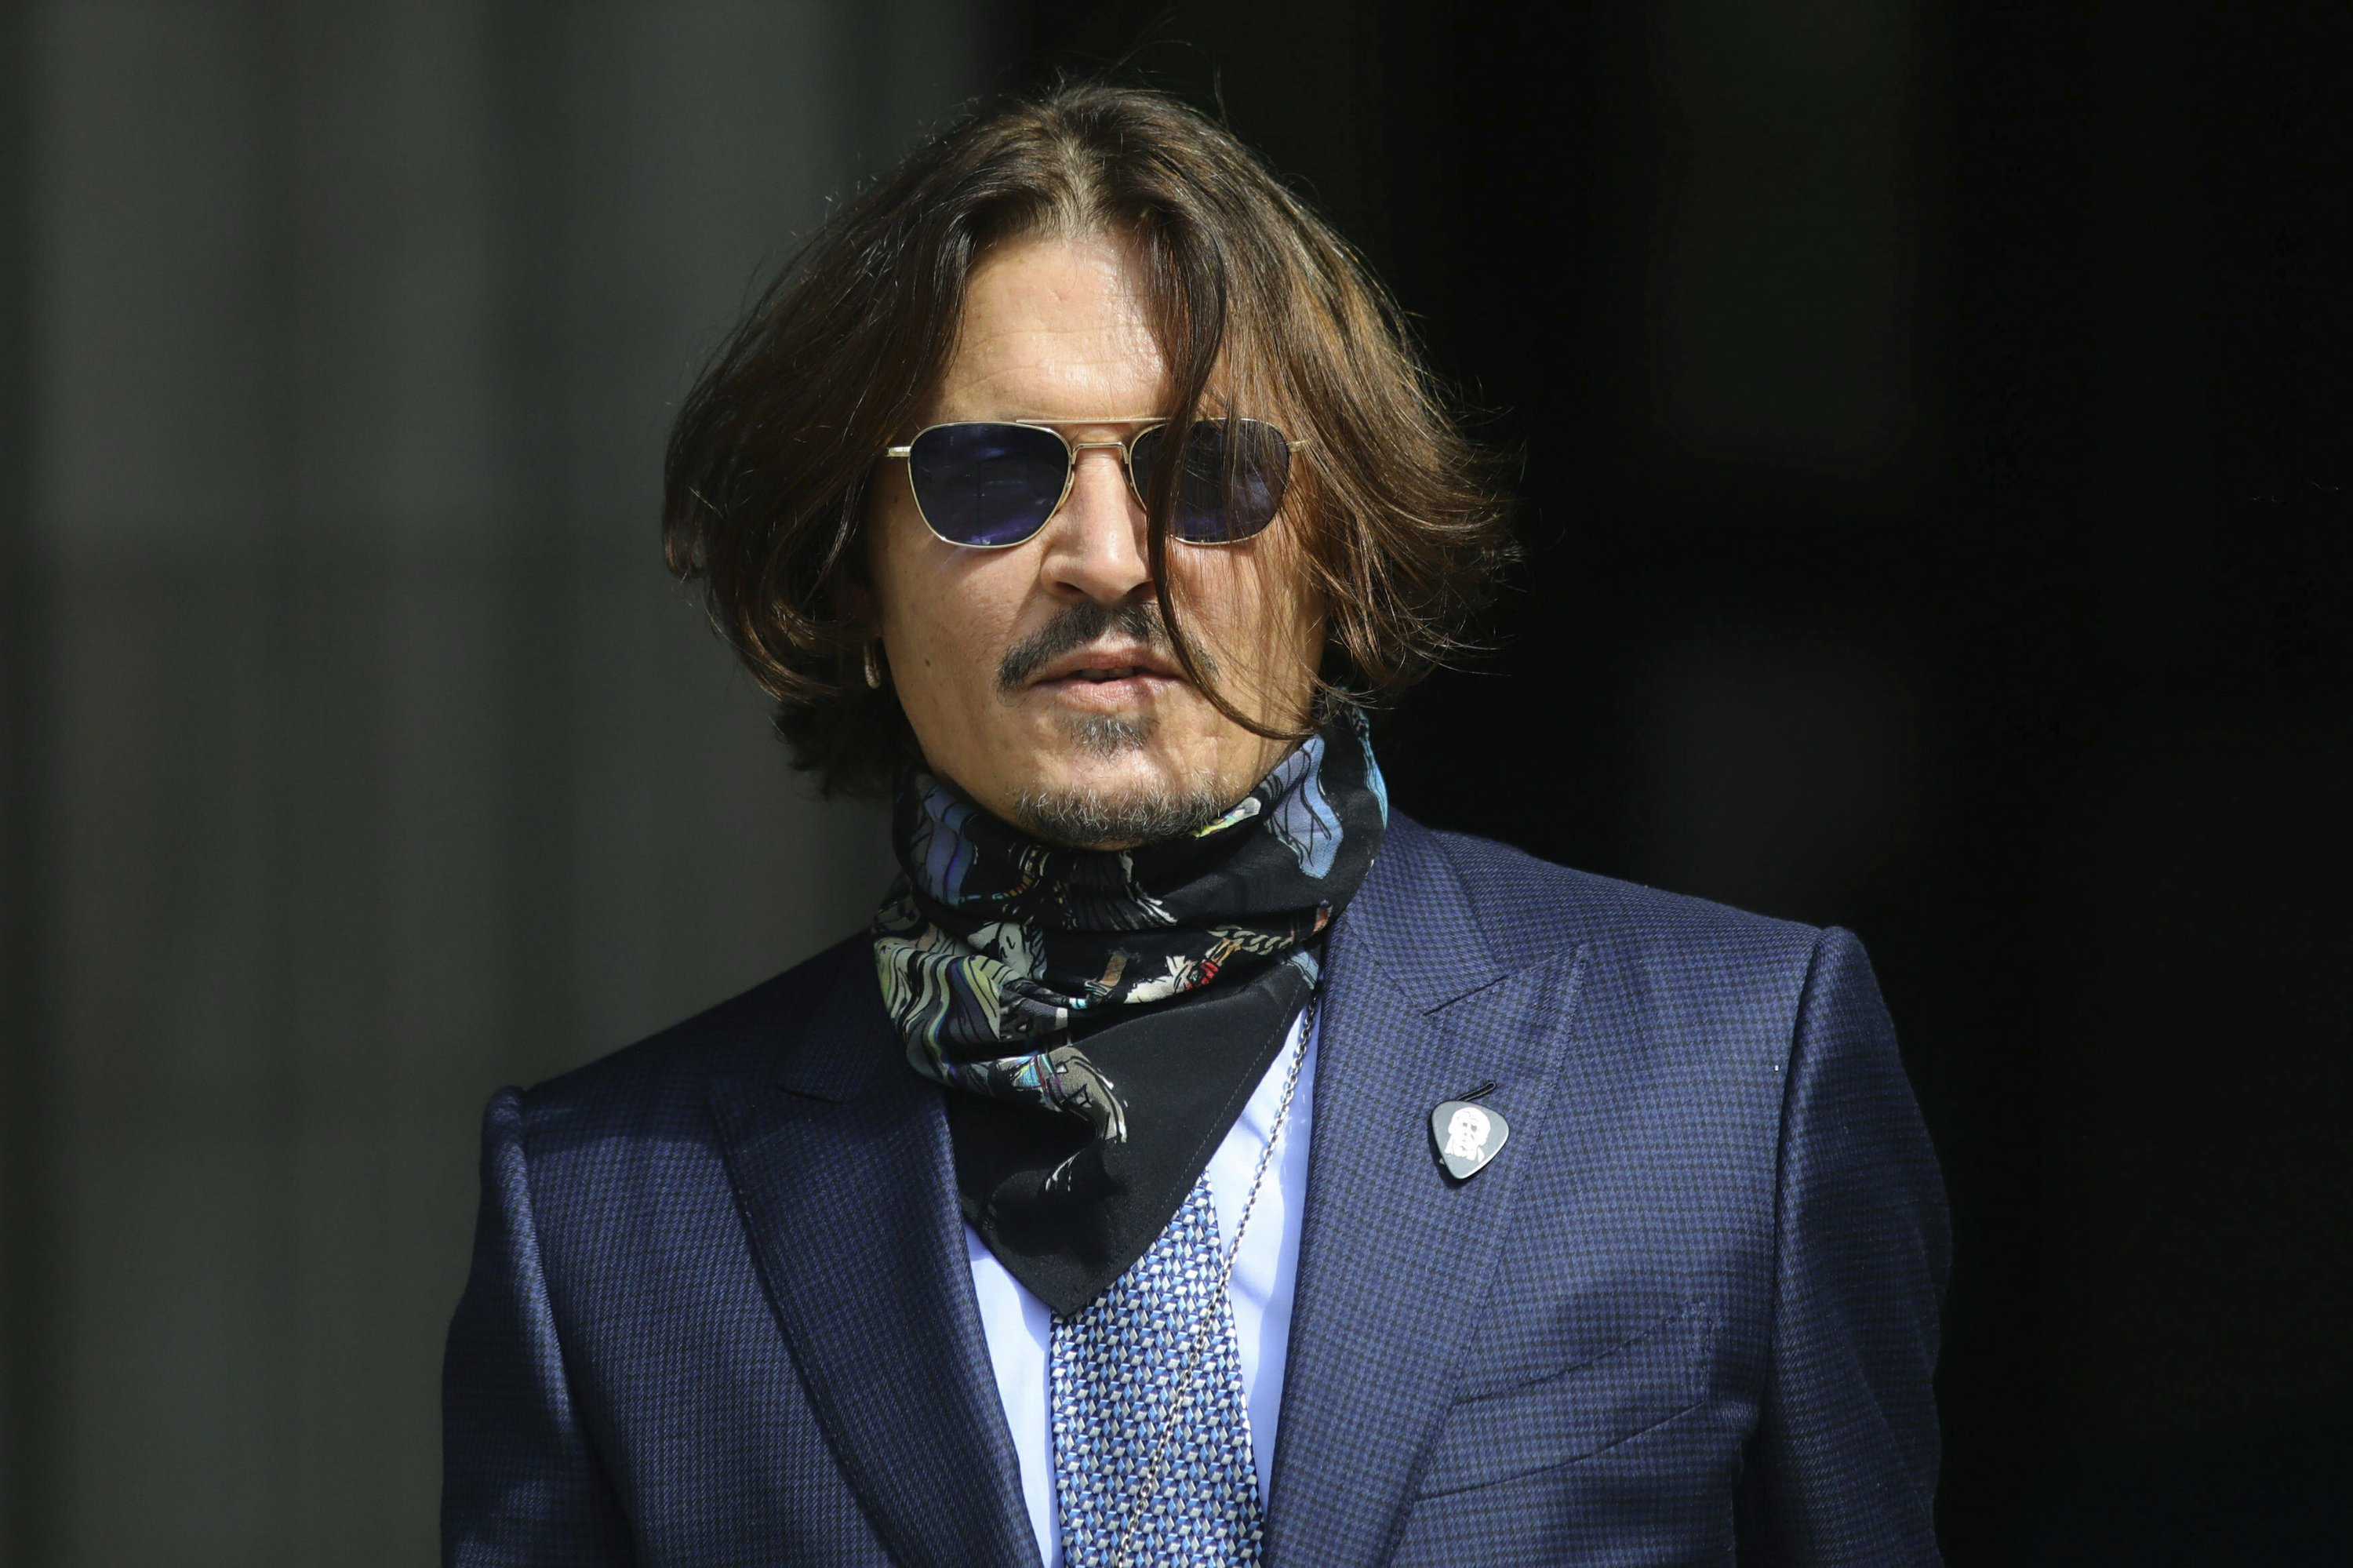 Lawyers summing up at Depp's libel trial against UK tabloid thumbnail